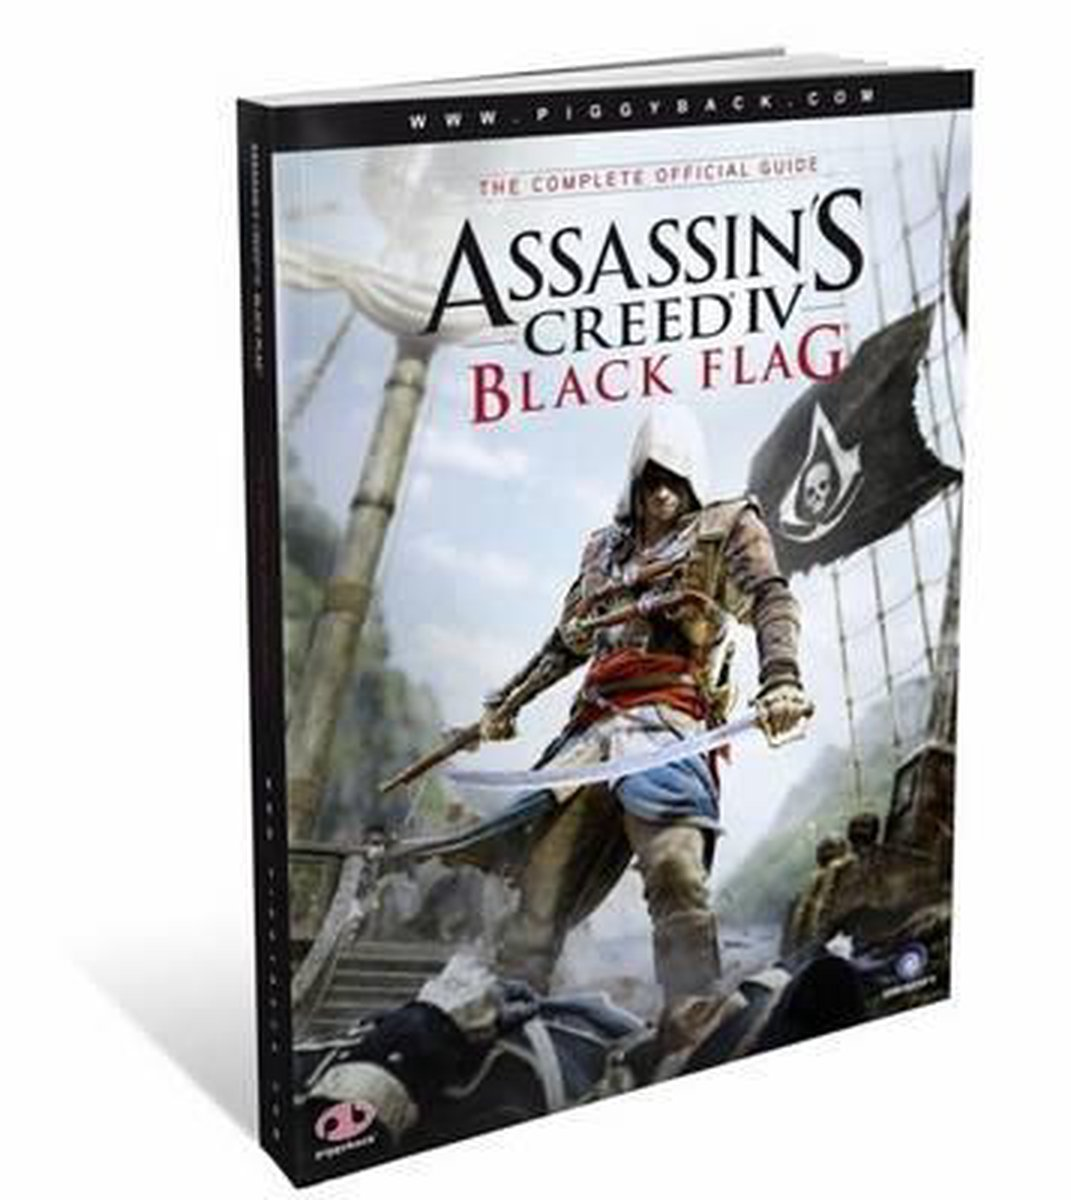 Assassin's Creed IV Black Flag - the Complete Official Guide - Piggyback